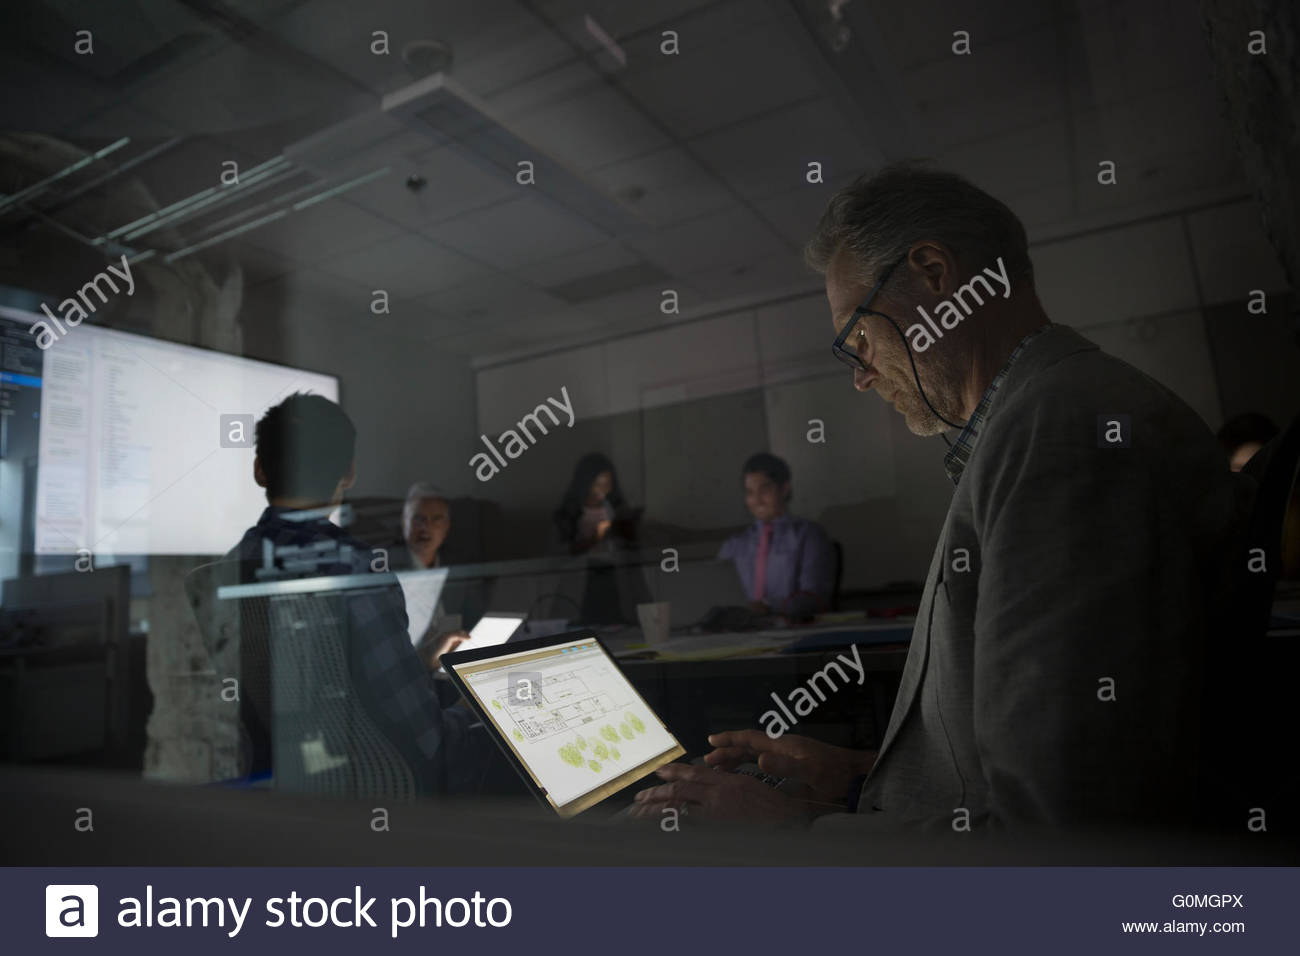 Architect using laptop dark conference room meeting - Stock Image